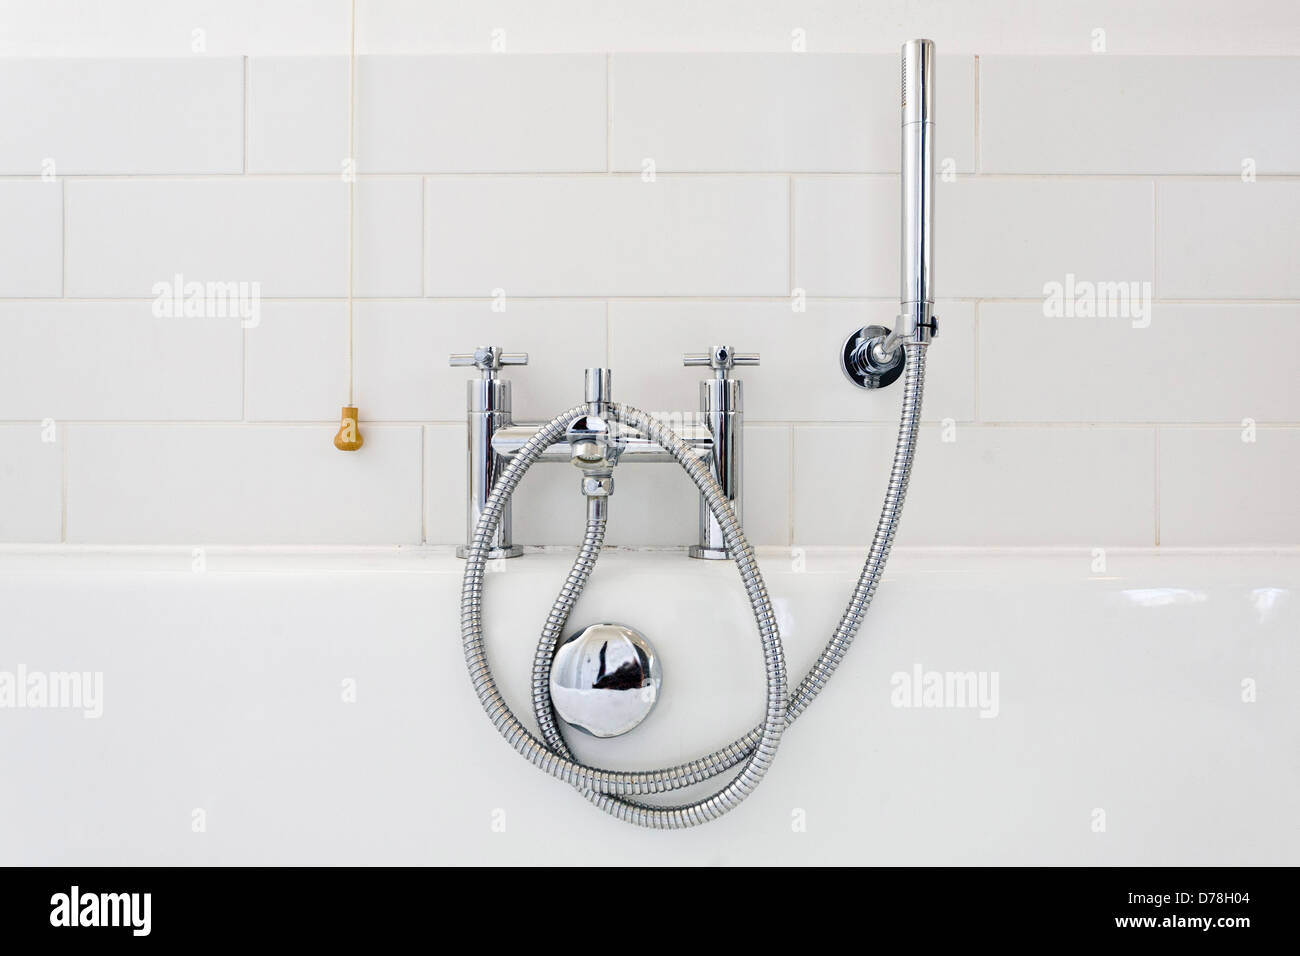 shower attachments for bath taps mobroi com modern bath taps and shower attachment stock photo royalty free